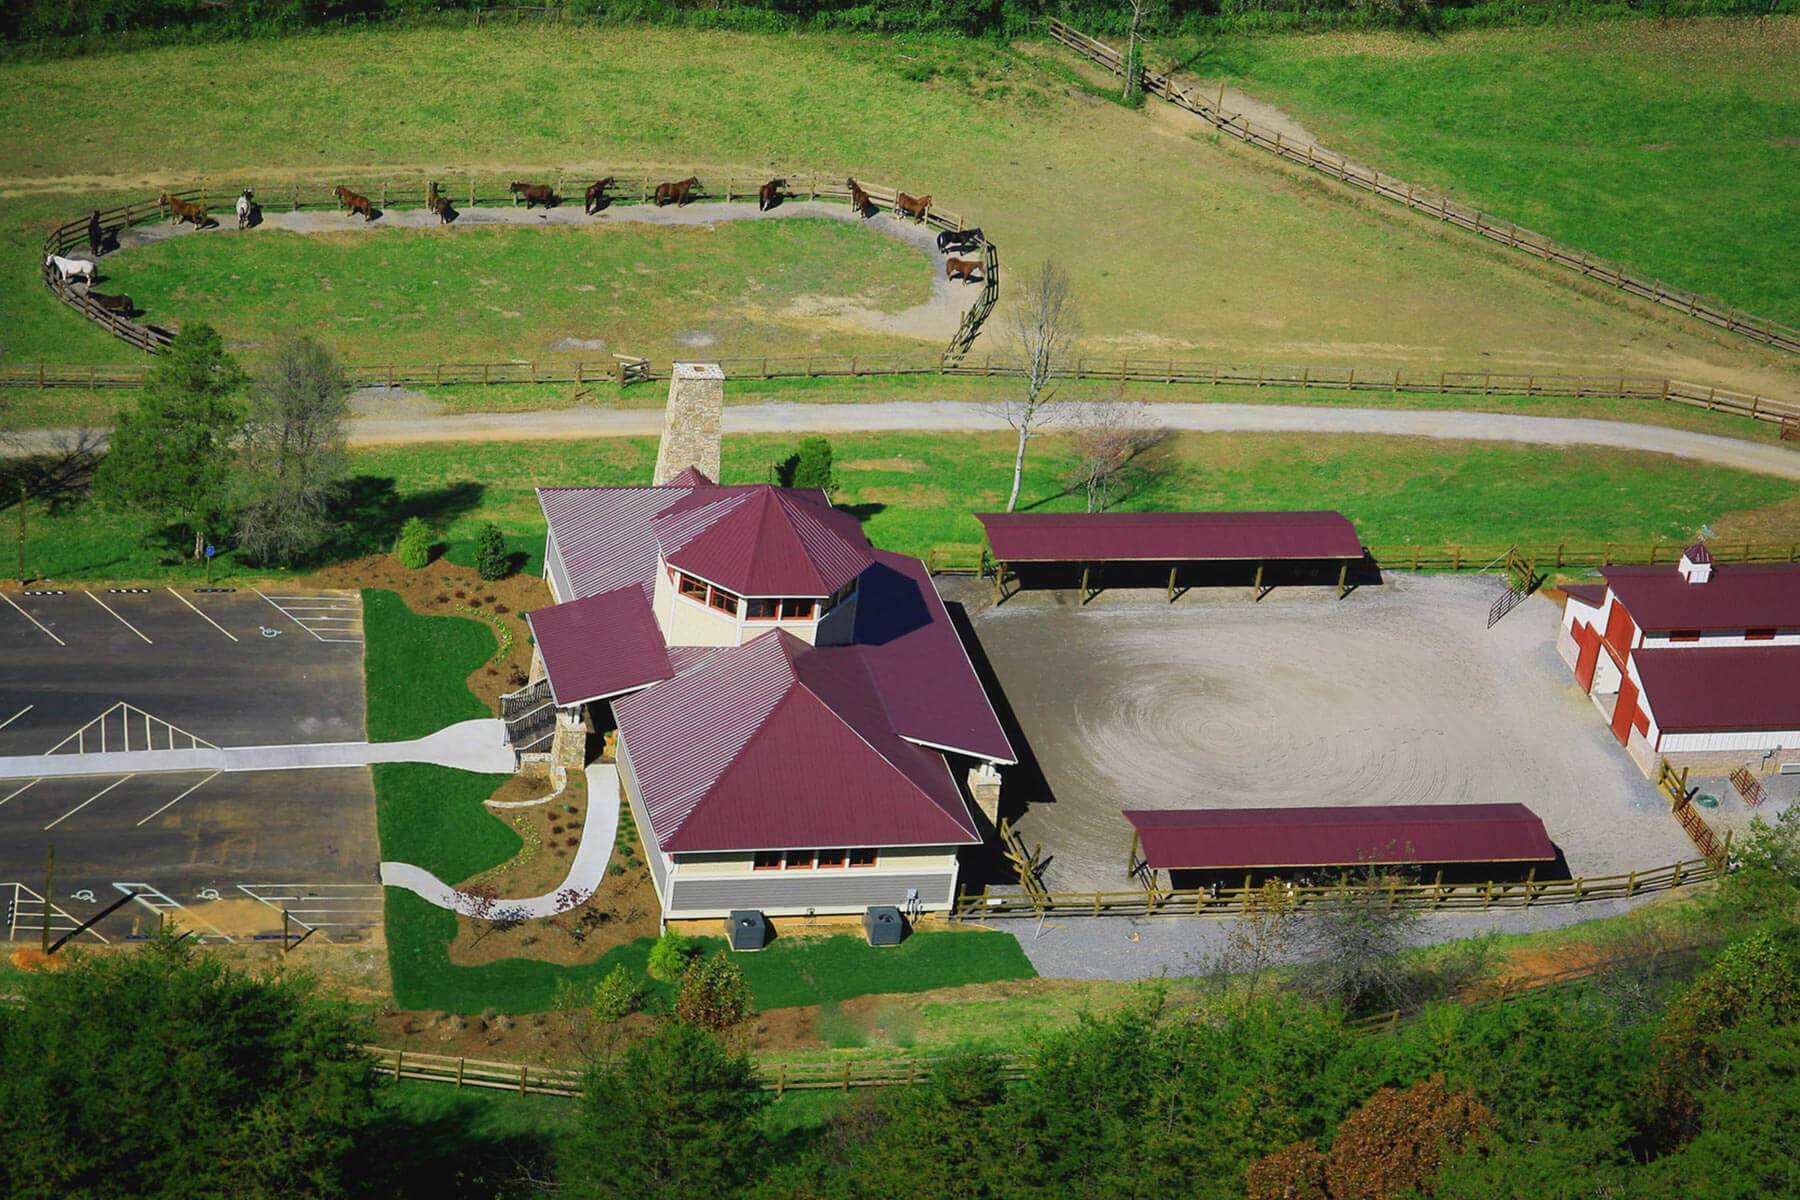 Brasstown-Valley-Mountain-Horseback-Riding-Georgia-Stables-Programs-Western-Riding-Lessons